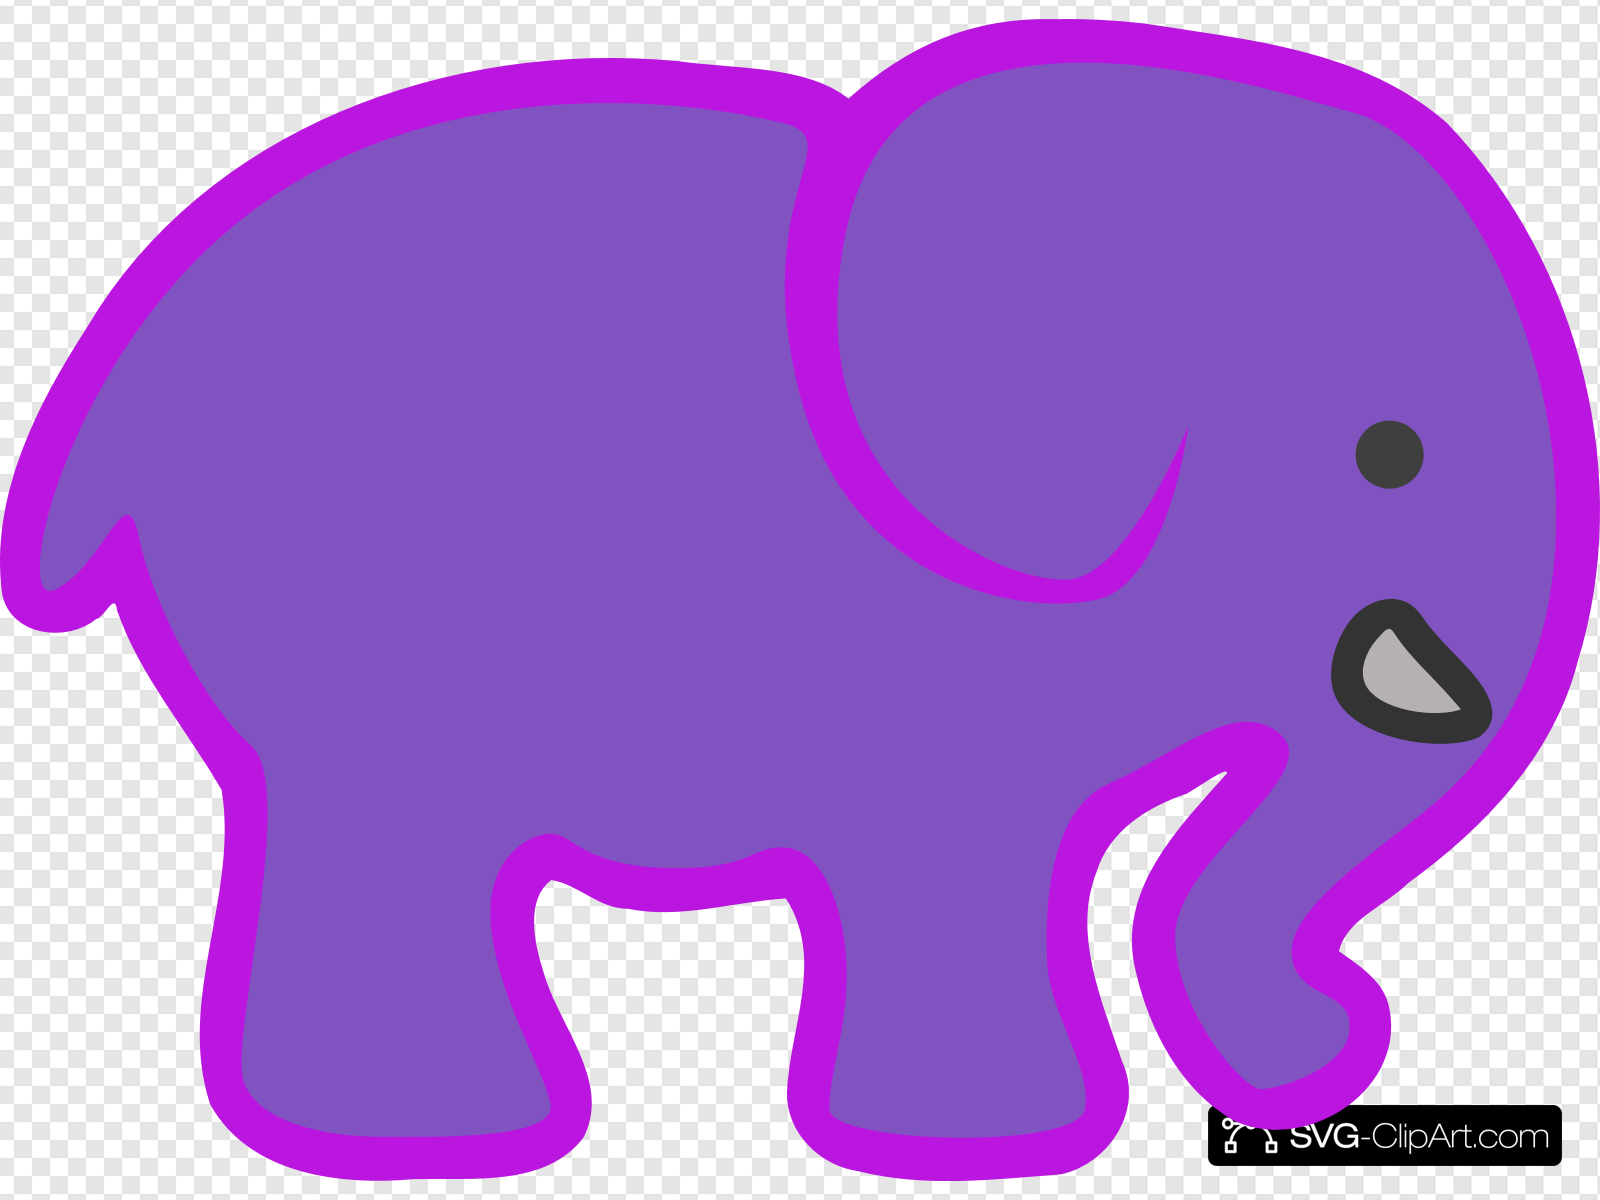 Baby Elephant Clip art, Icon and SVG.